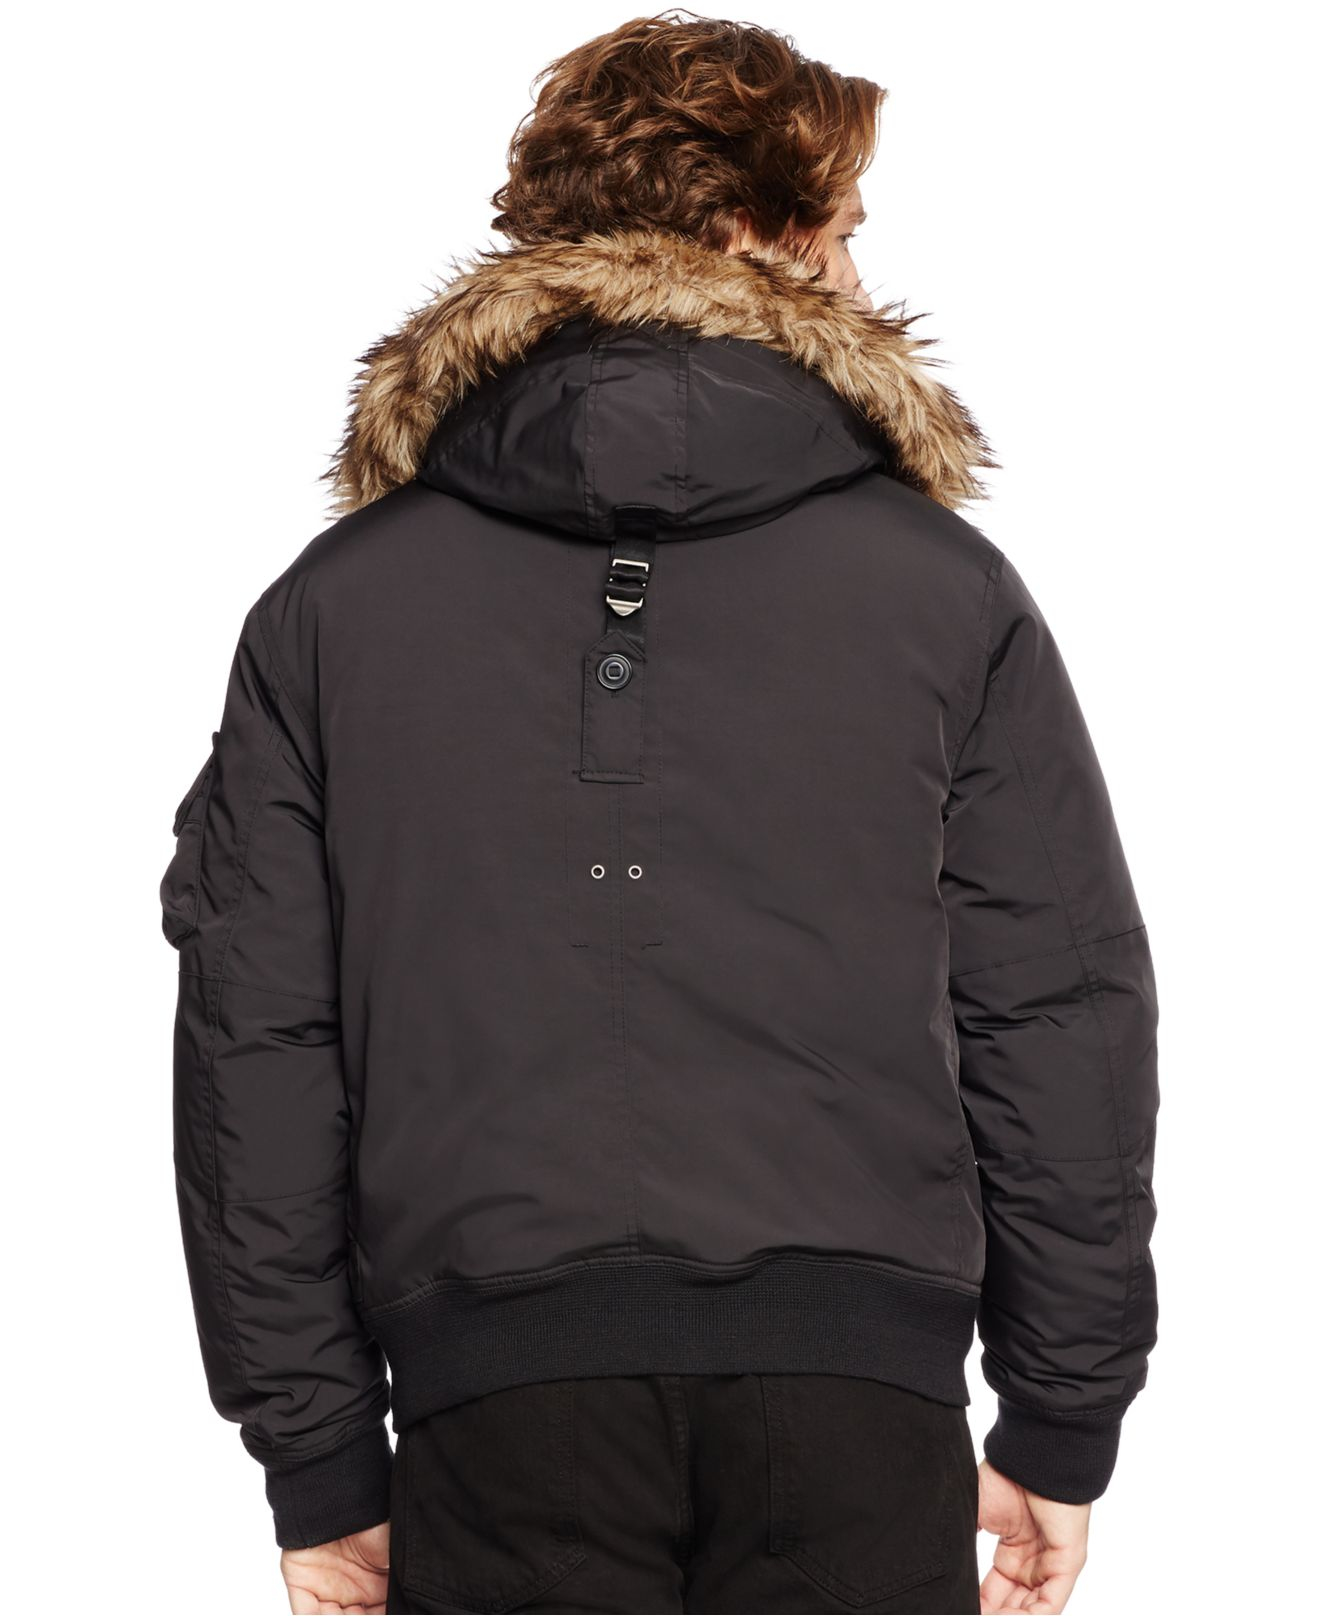 Lyst - Polo Ralph Lauren Holter Down Bomber Jacket in ...